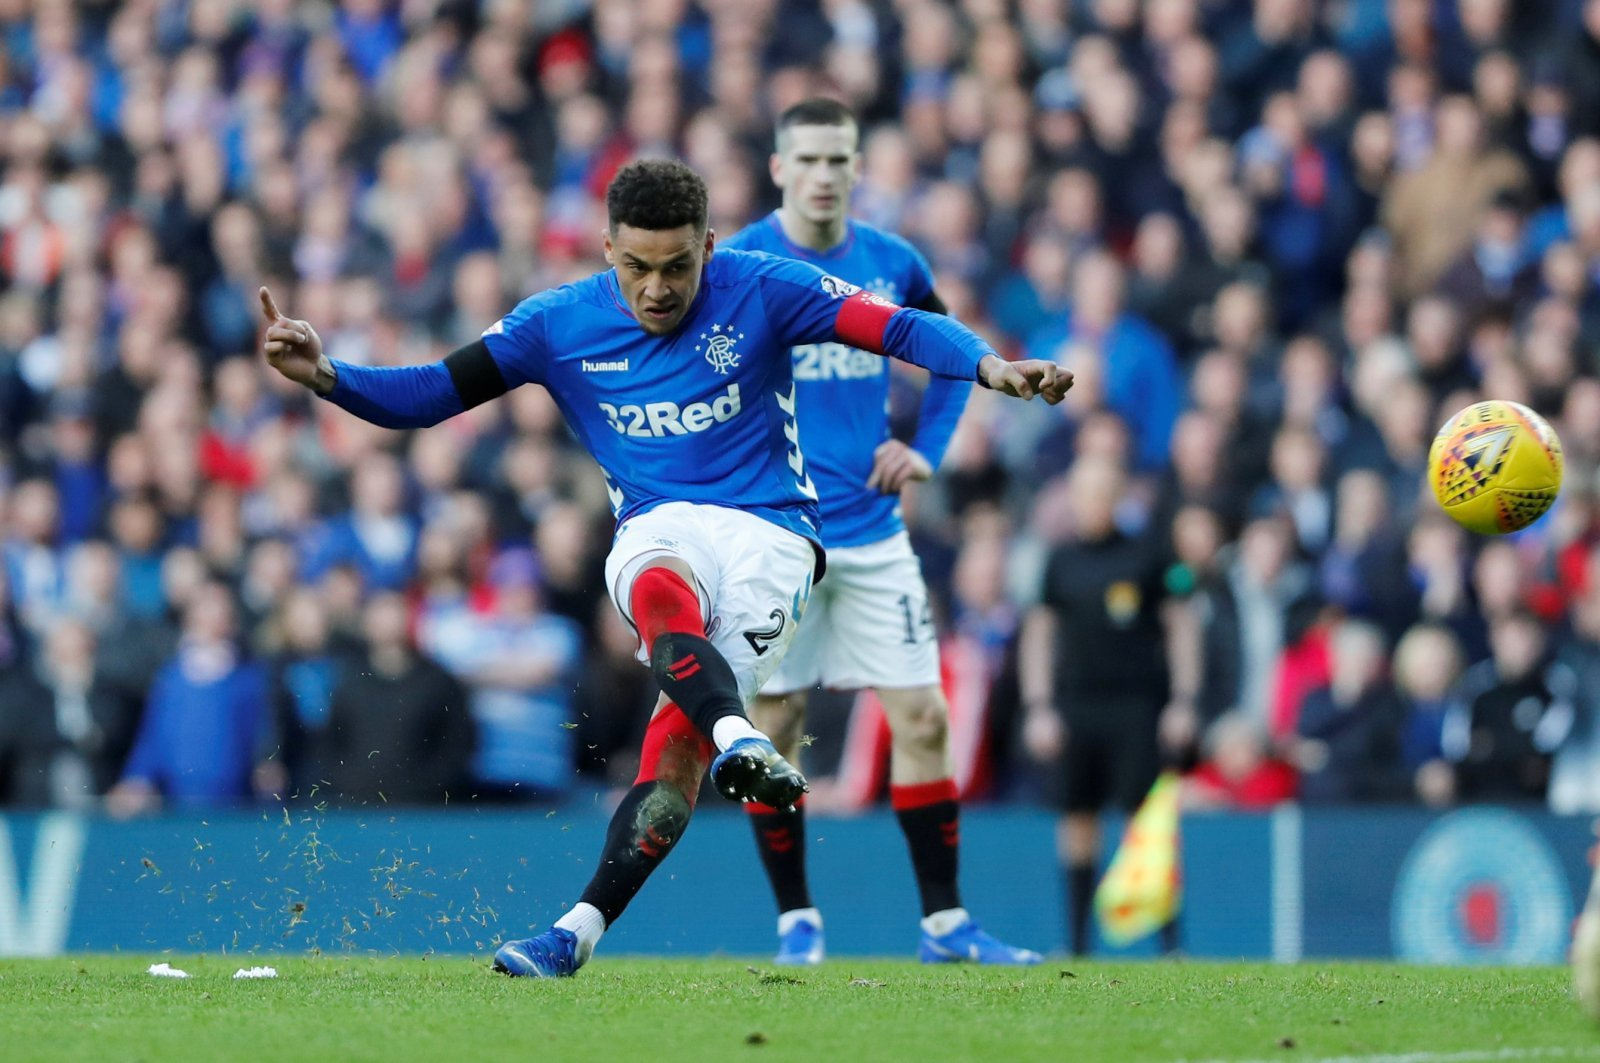 Rangers fans on Twitter were livid at their captain yesterday